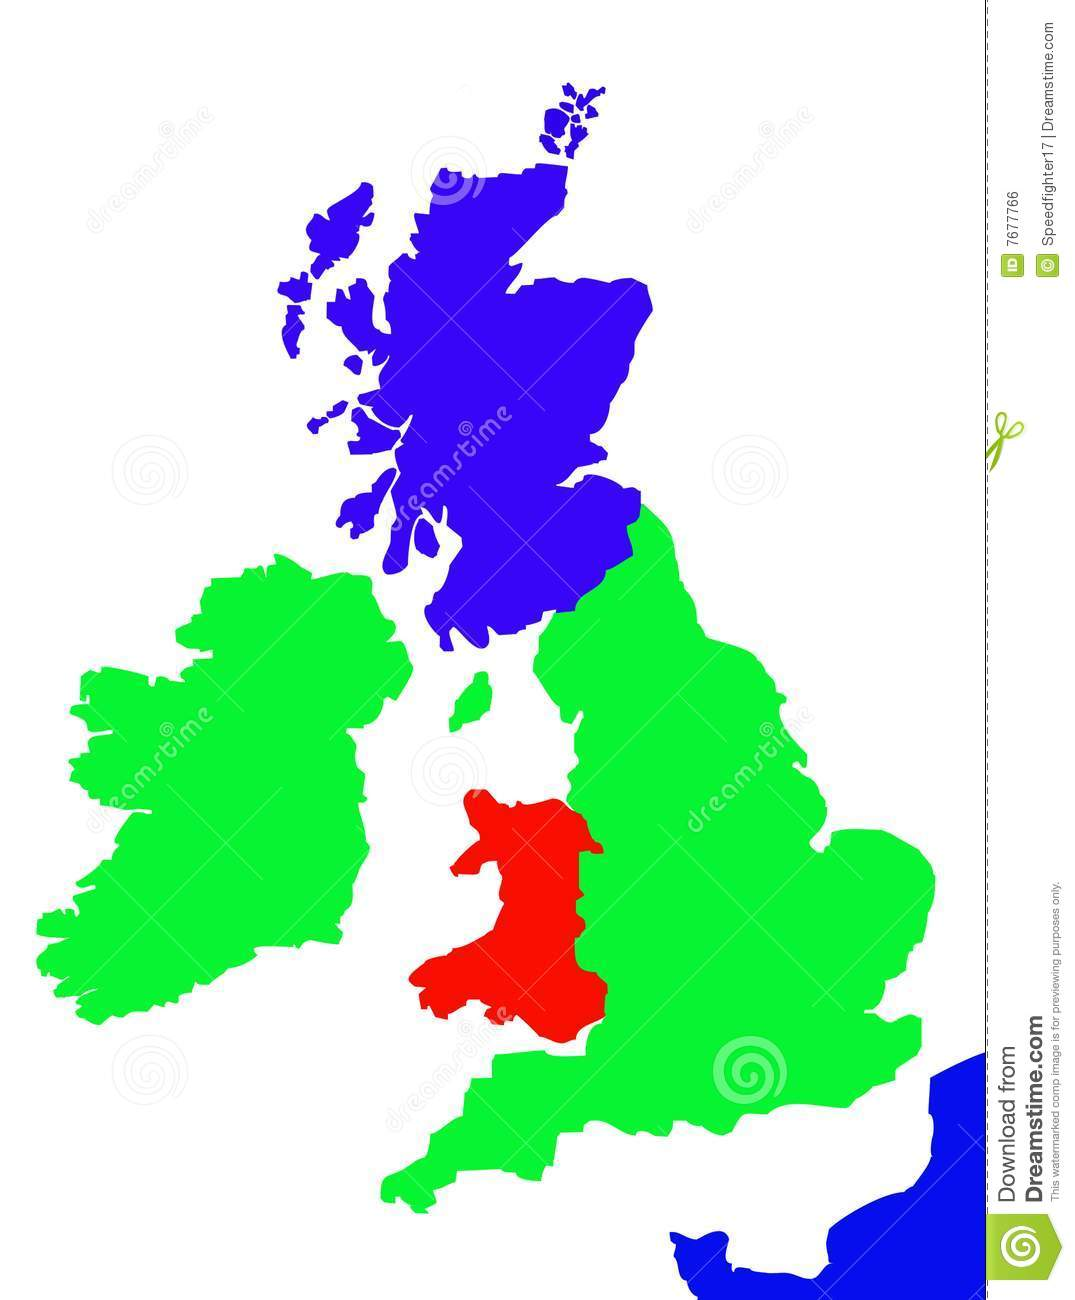 Blank united kingdom clipart map clip art freeuse library Outline Map Of United Kingdom Royalty Free Stock Image - Image ... clip art freeuse library